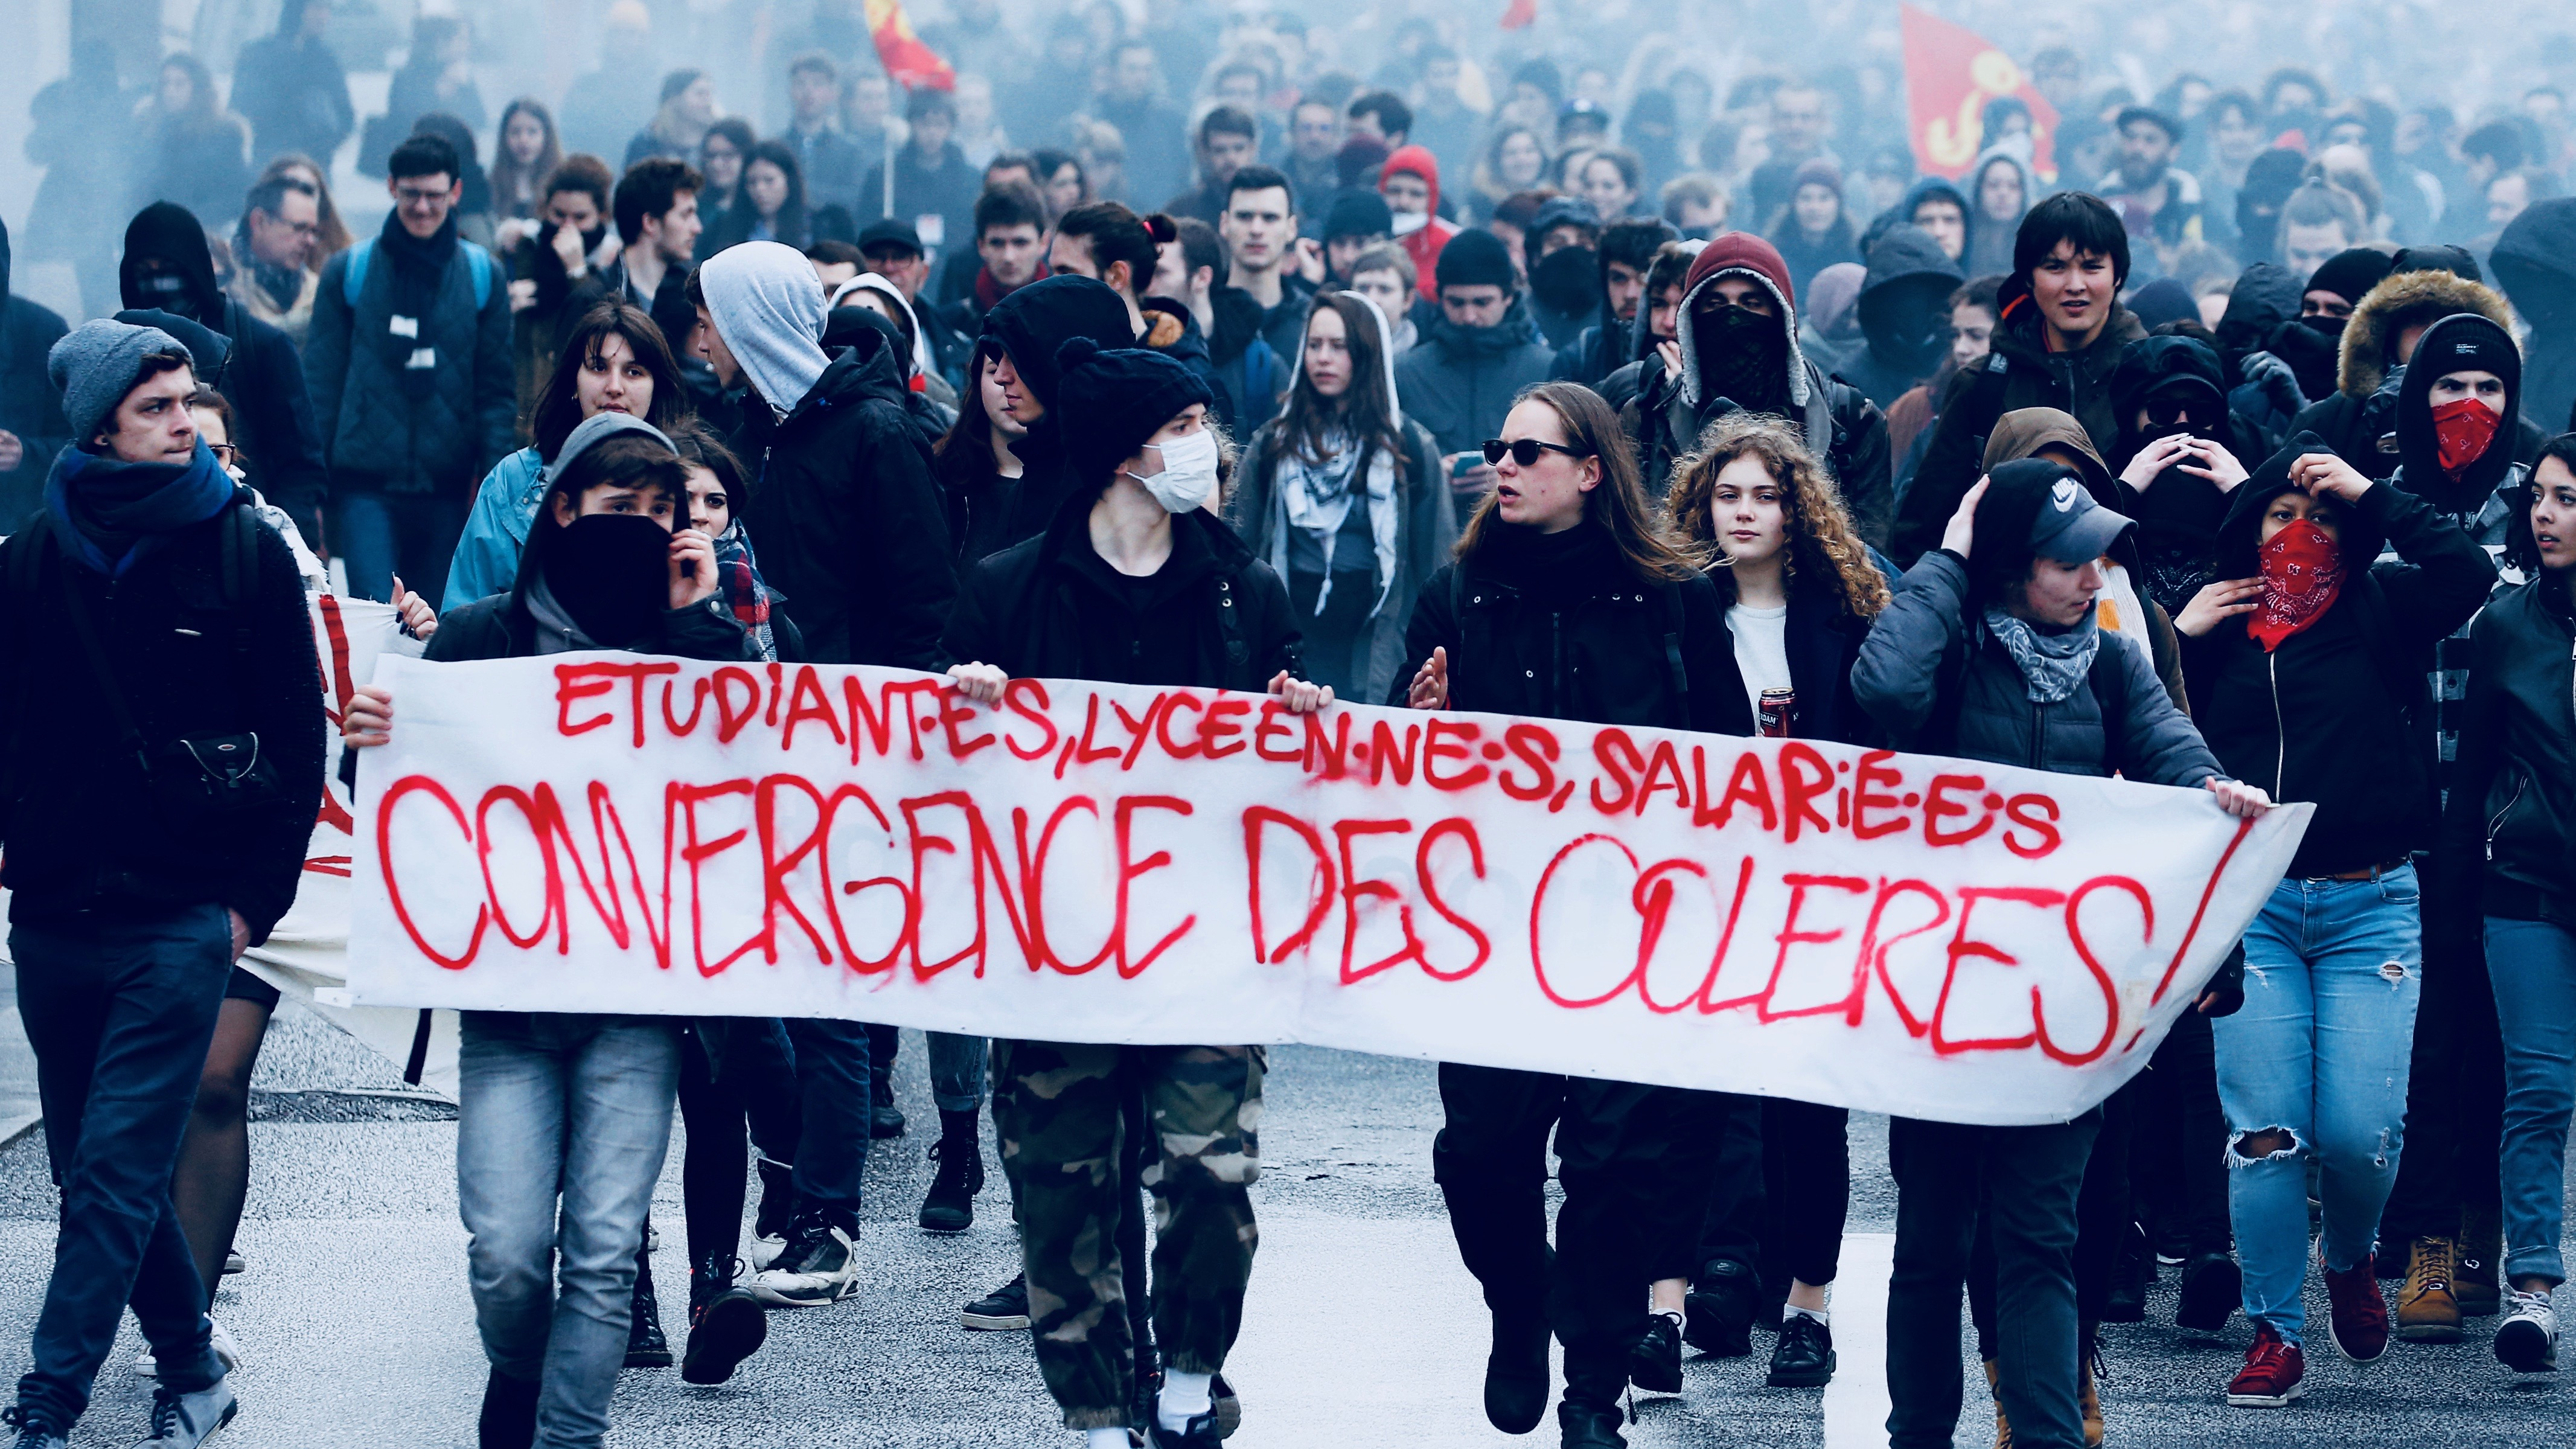 Protest in France.